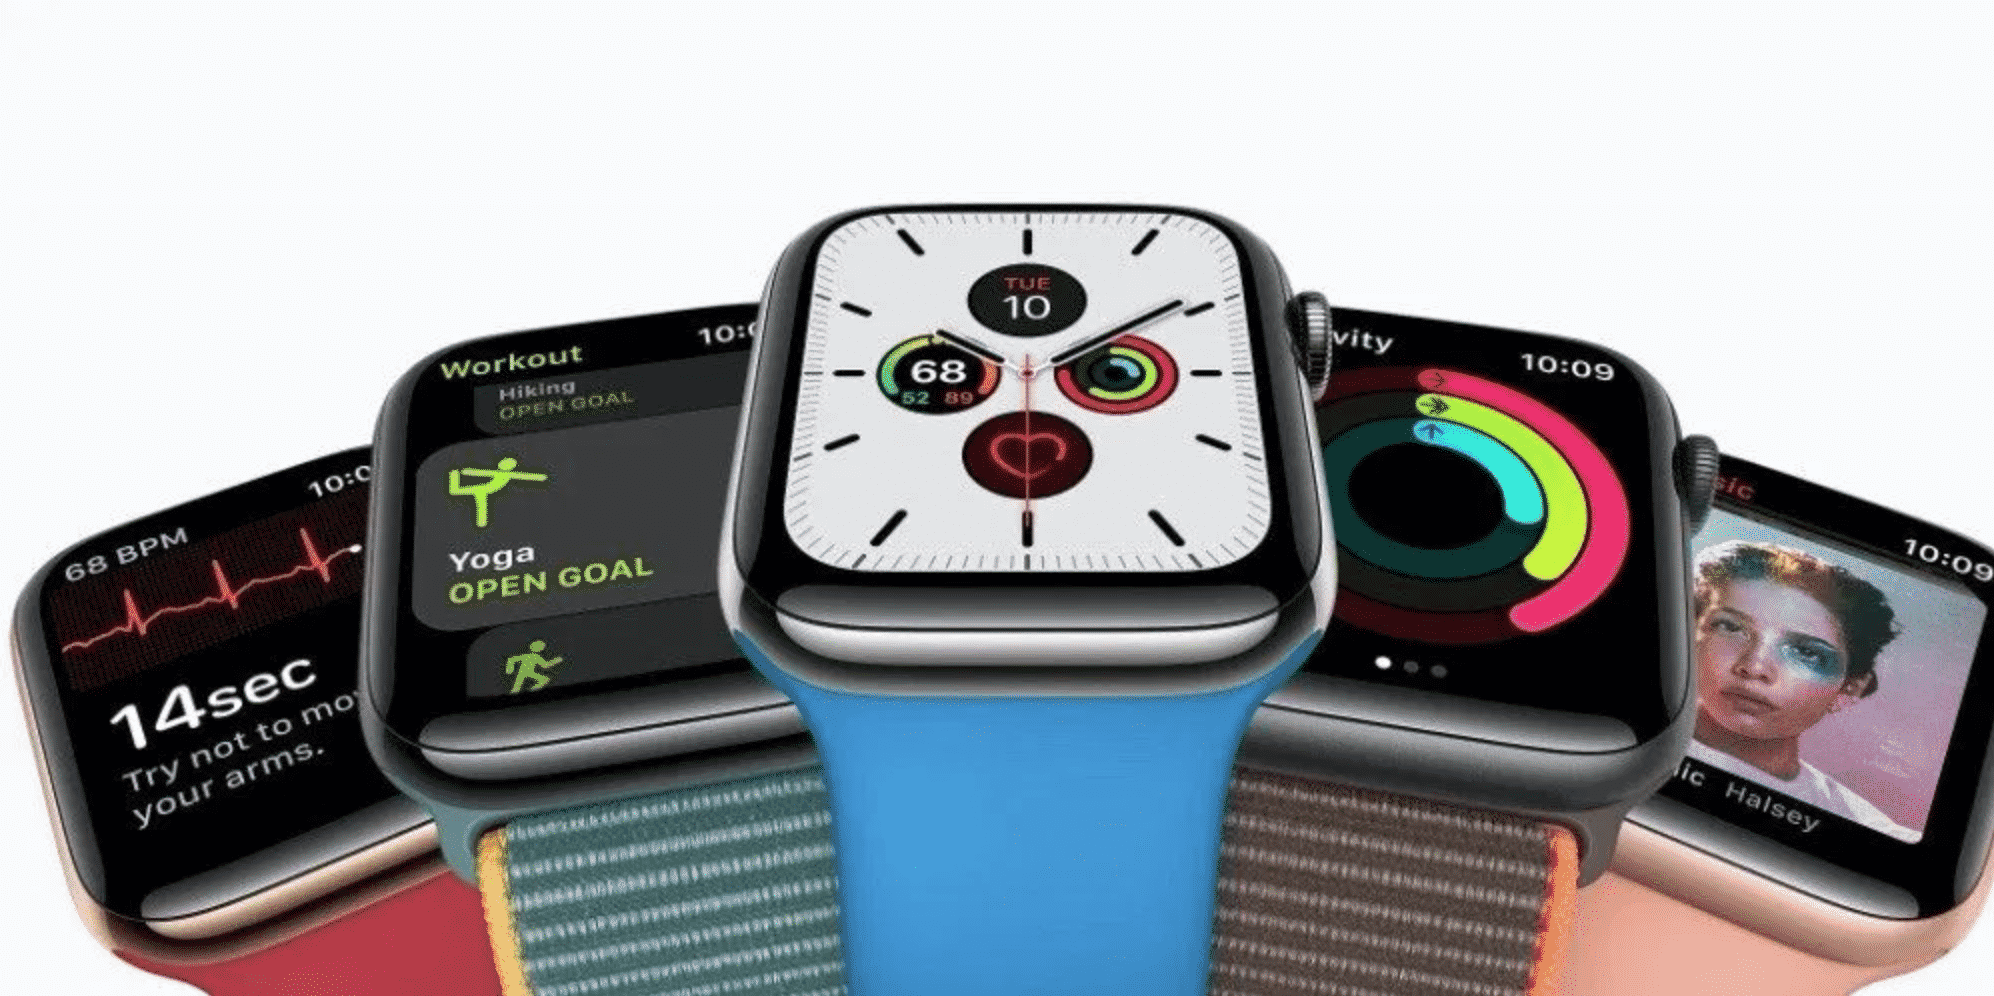 Activity Rings to be Included in Kids Mode on Apple WatchOS 7